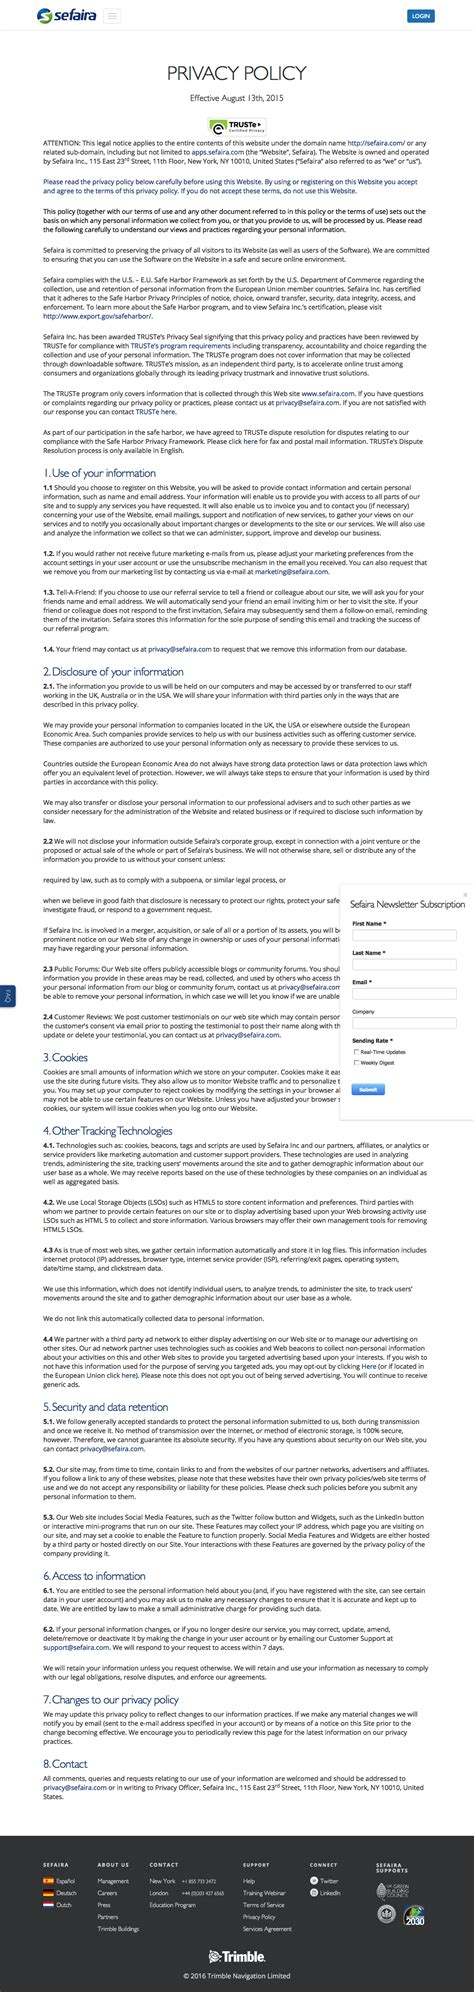 generic privacy policy template fantastic privacy policy statement template gallery